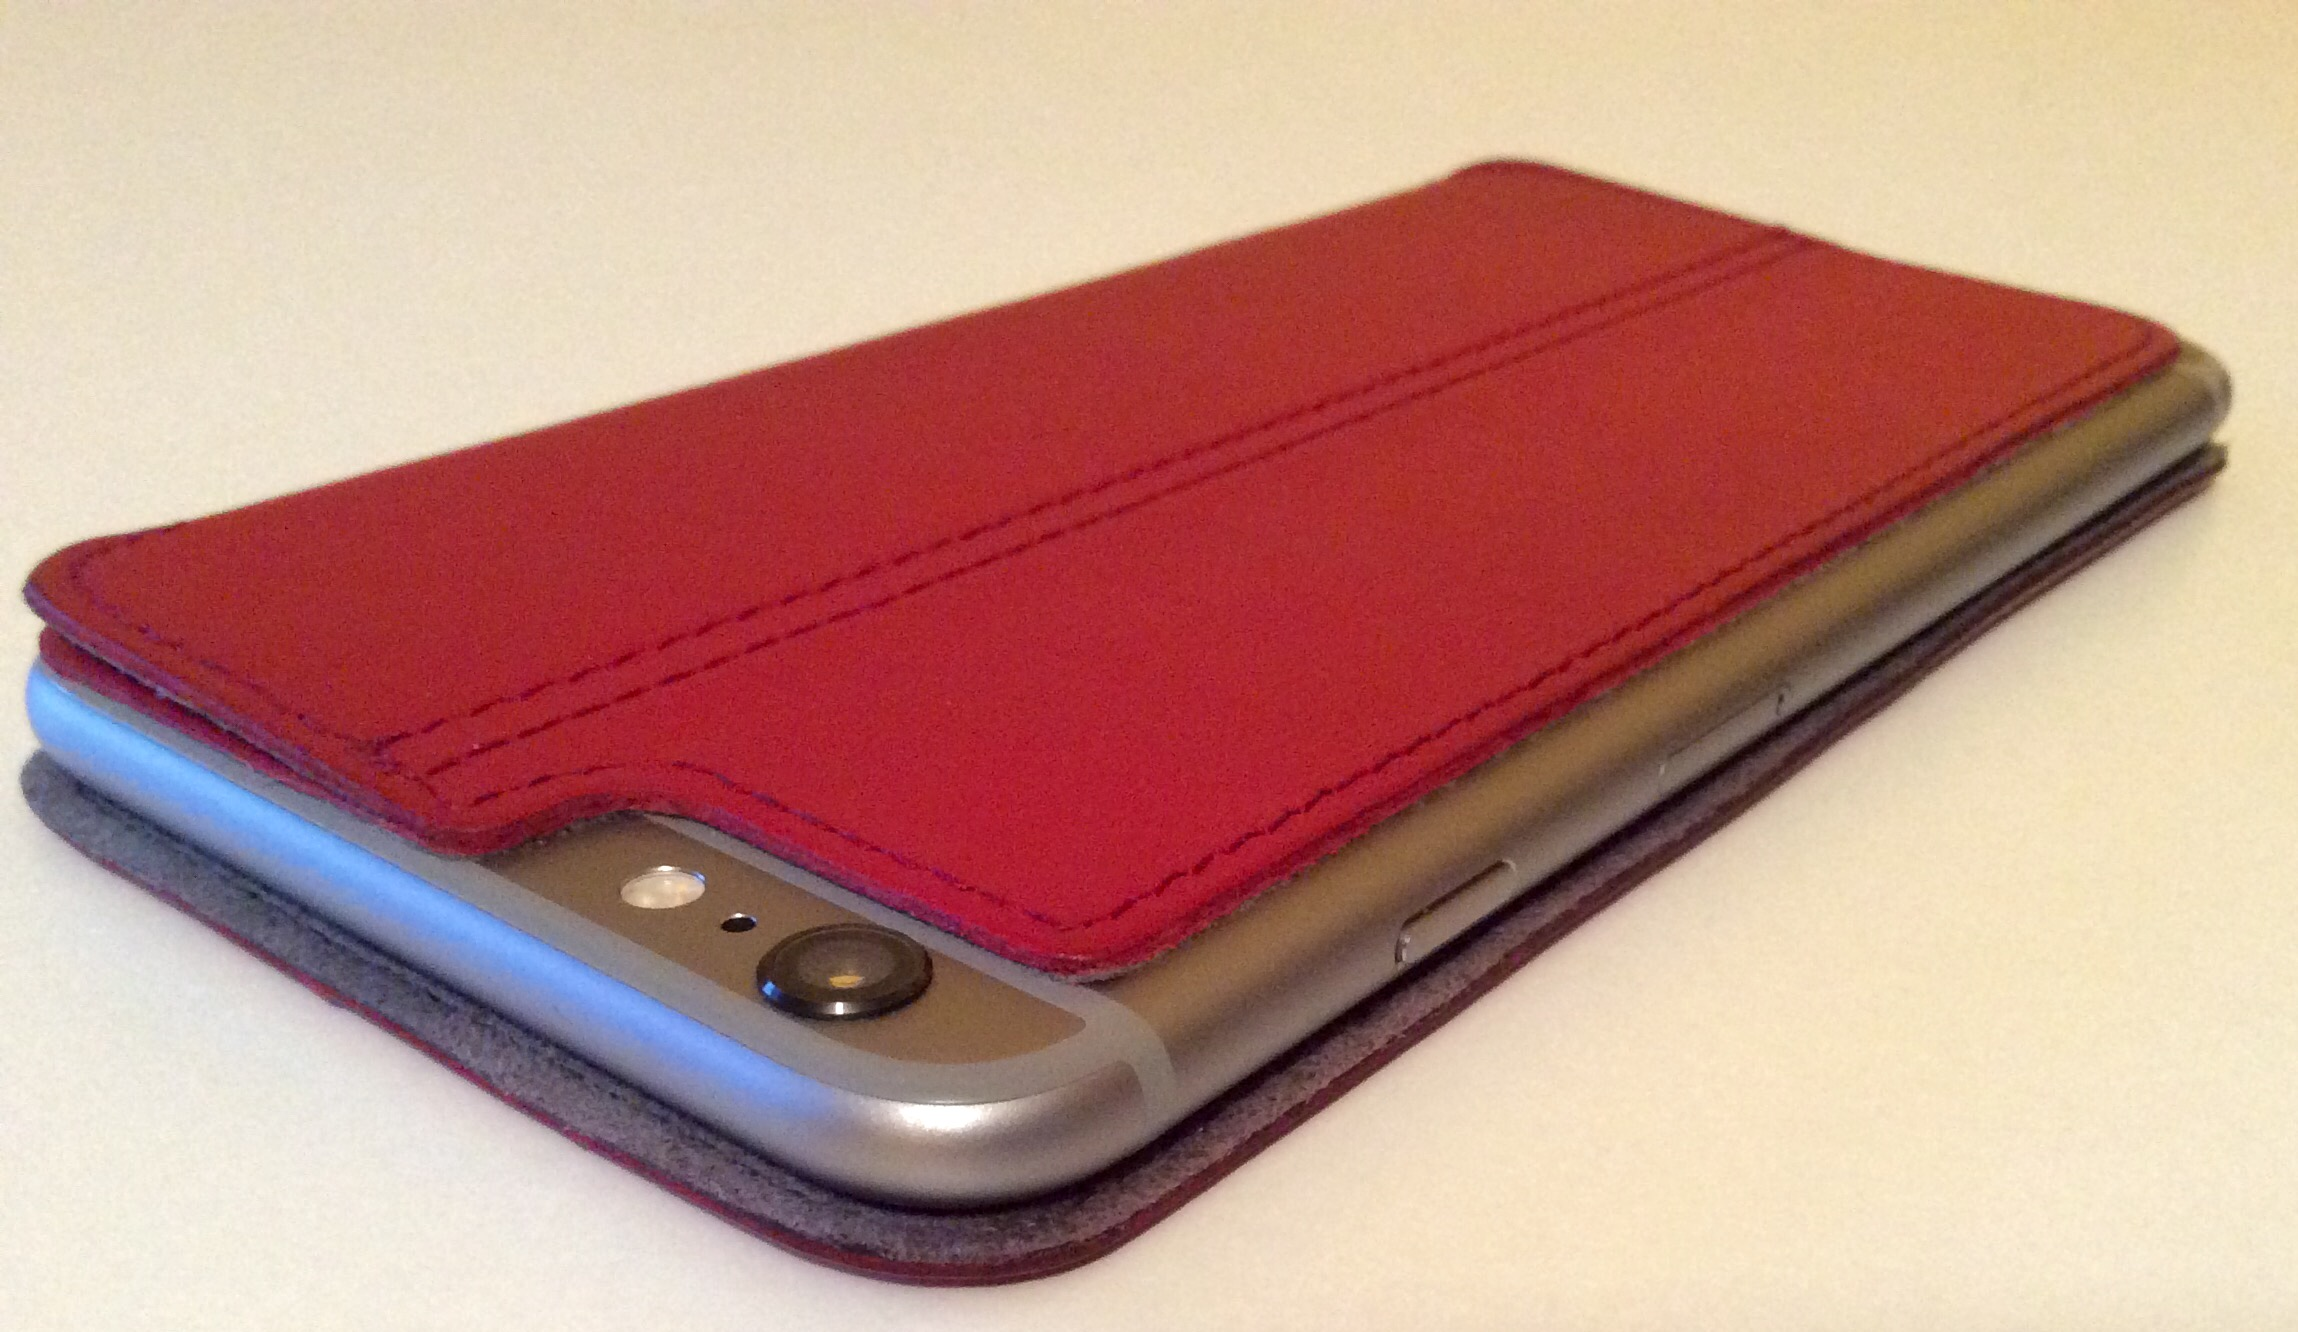 Twelve South SurfacePad for iPhone 6 Plus picture 00008